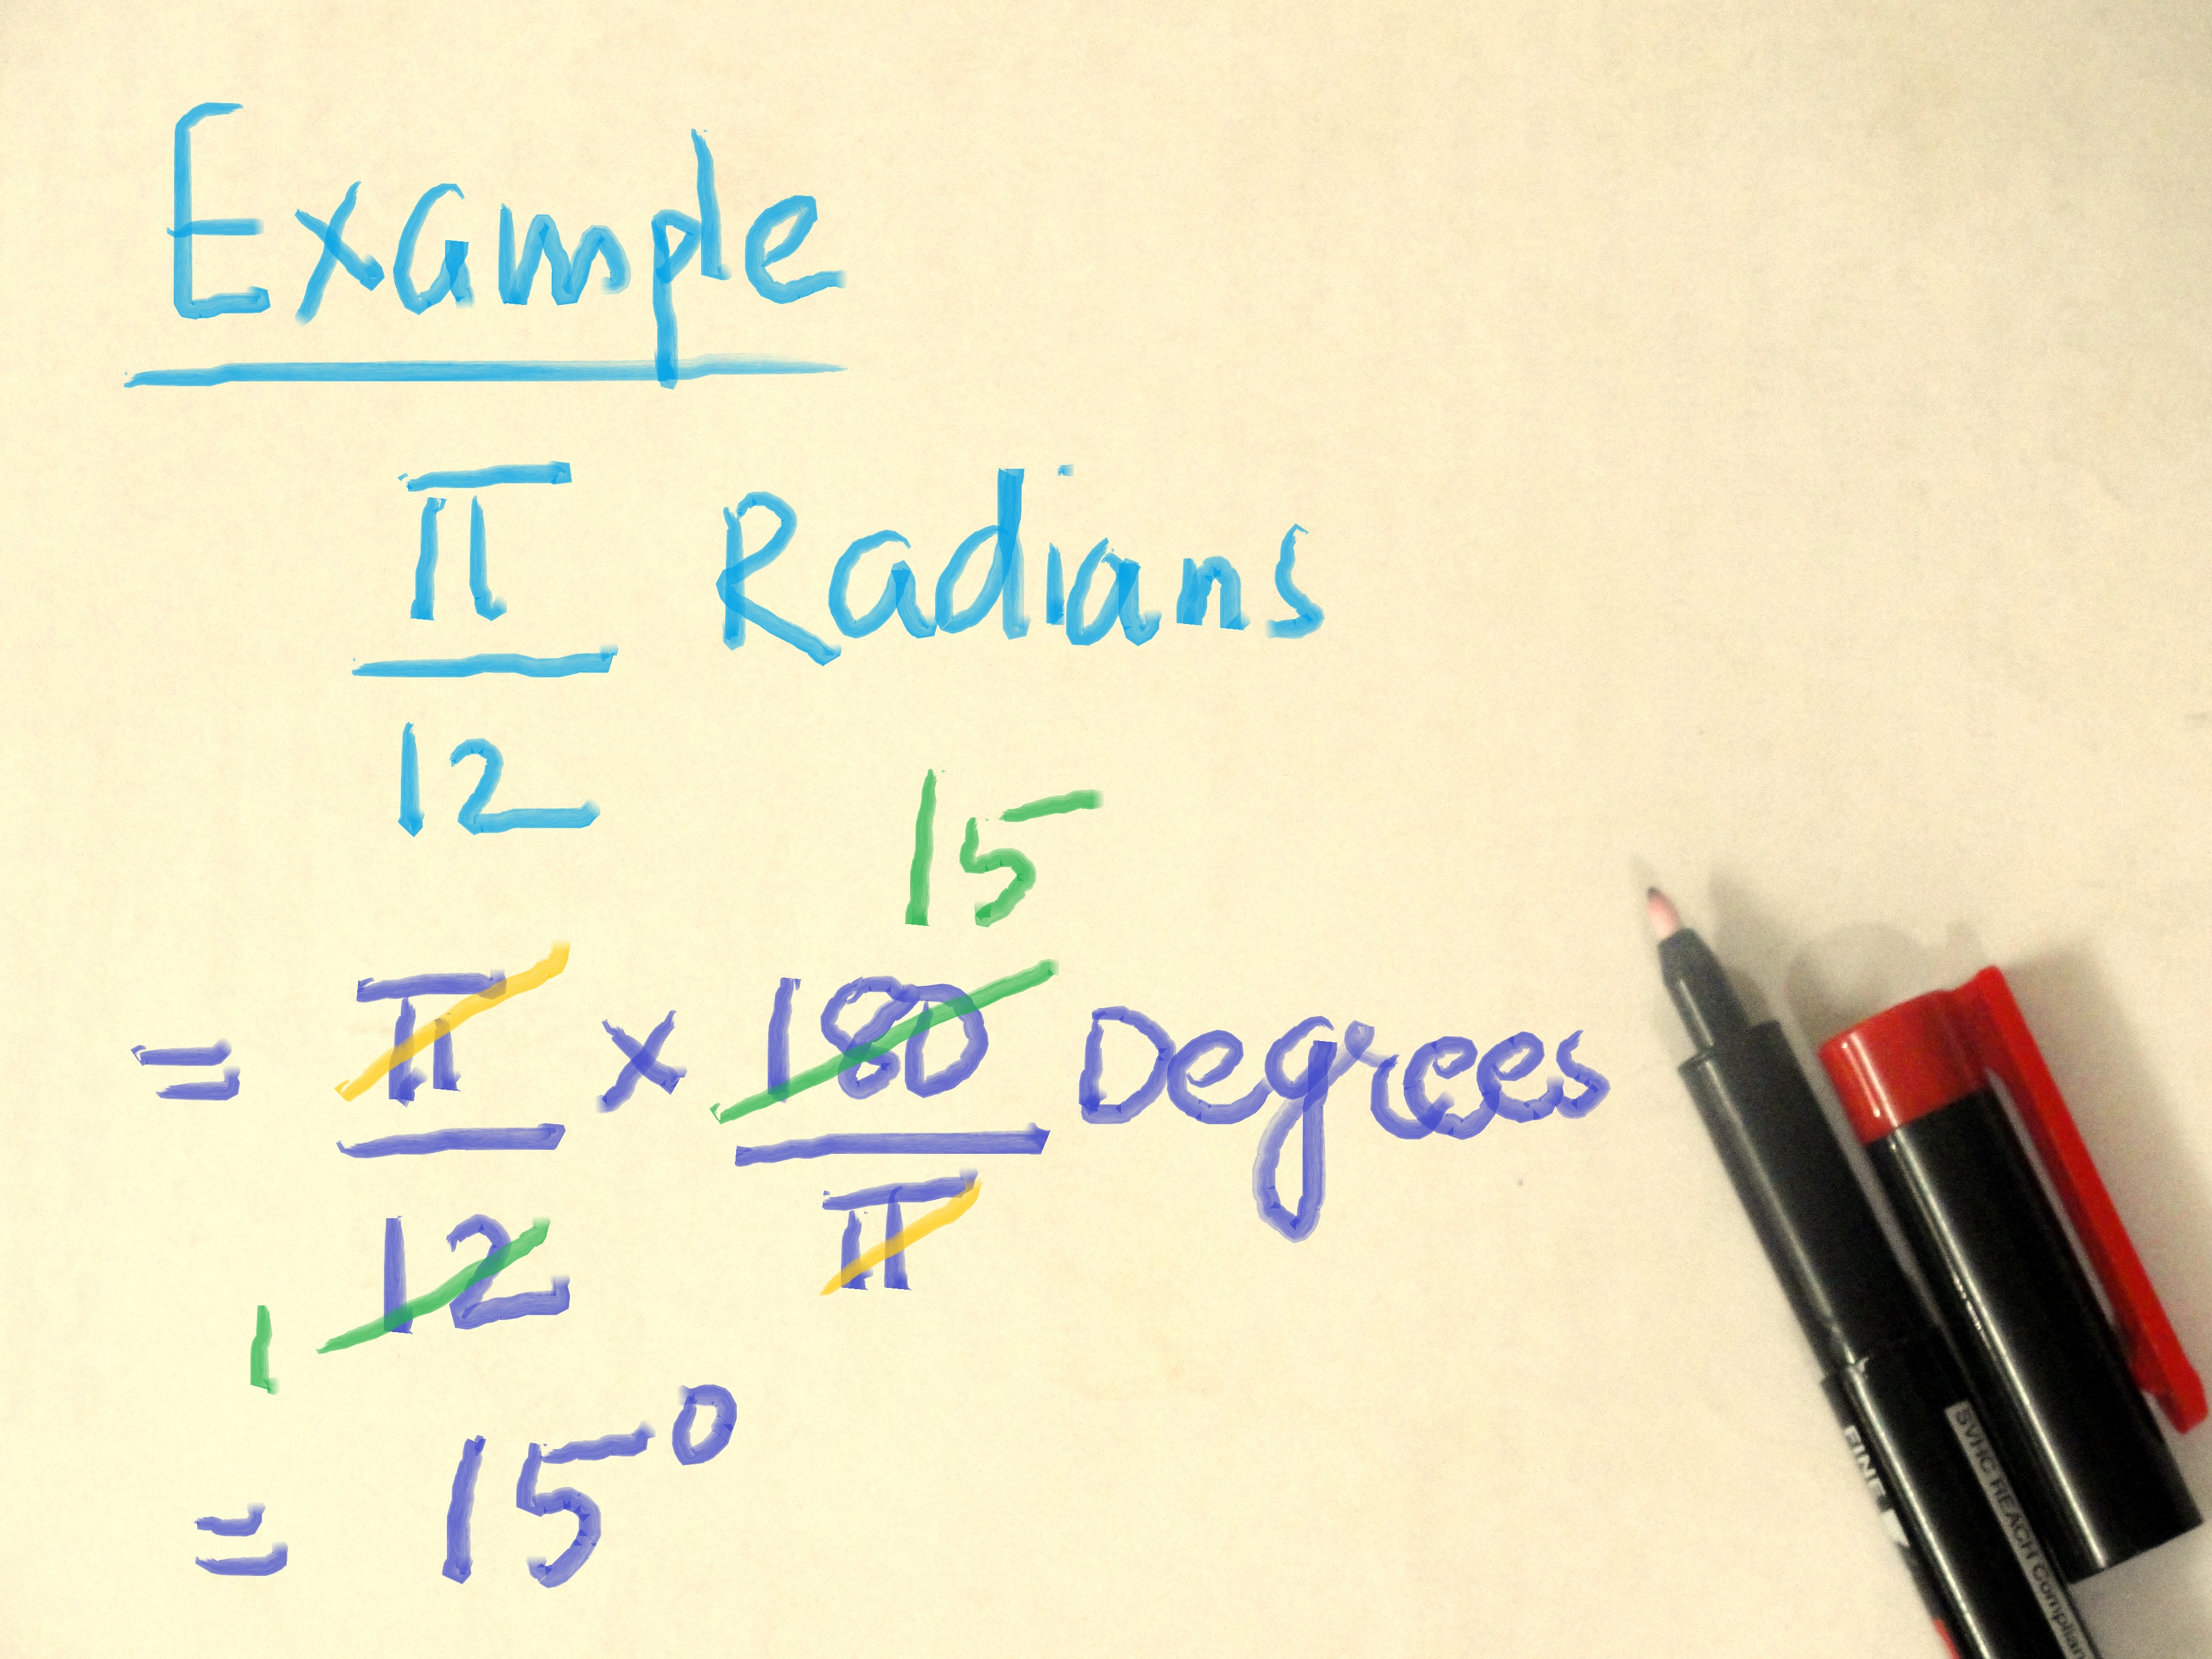 Ba Degree How To Convert Degrees To Radians